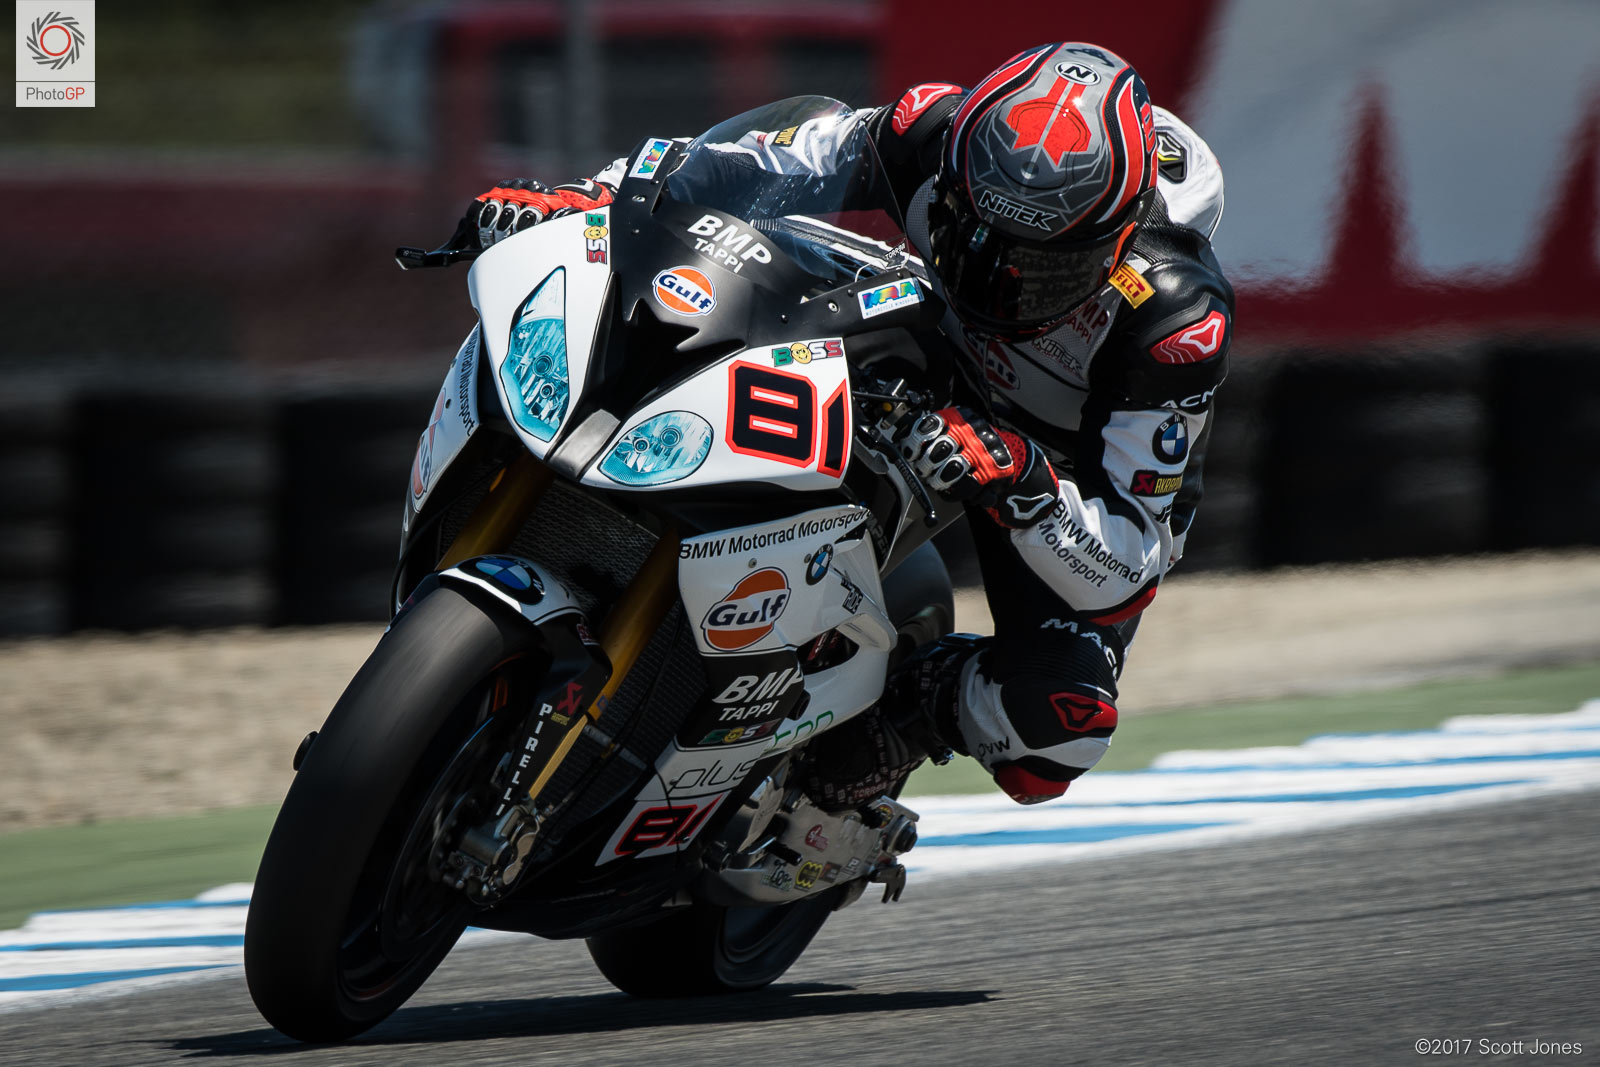 Quot Spanish Elvis Quot Racing Next Year With Mv Agusta Asphalt Amp Rubber